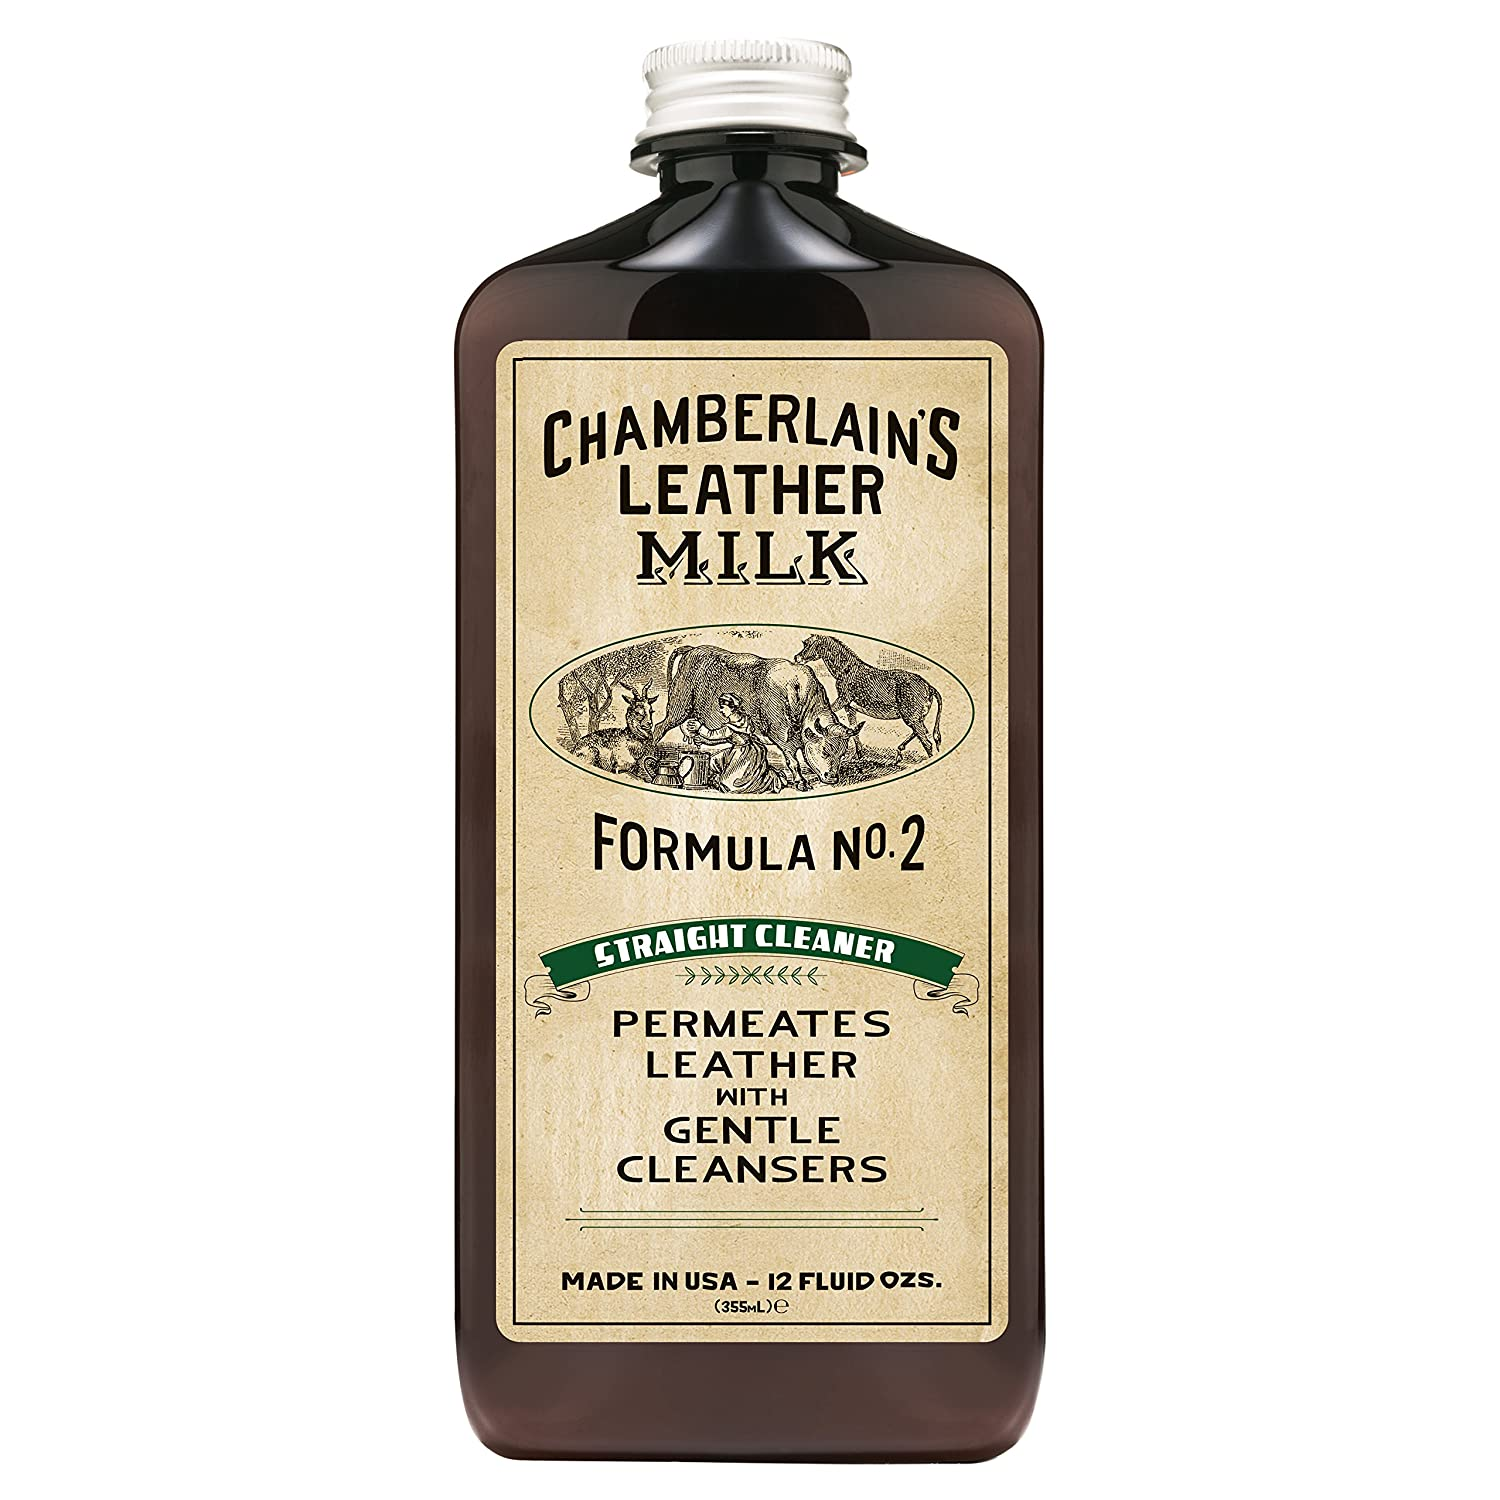 Leather Milk Leather Cleaner - Straight Cleaner No. 2 - All Natural, Non-Toxic Deep Cleaner Made in the USA. 2 Sizes. Includes Premium Cleaning Pad! Chamberlain' s Leather Milk